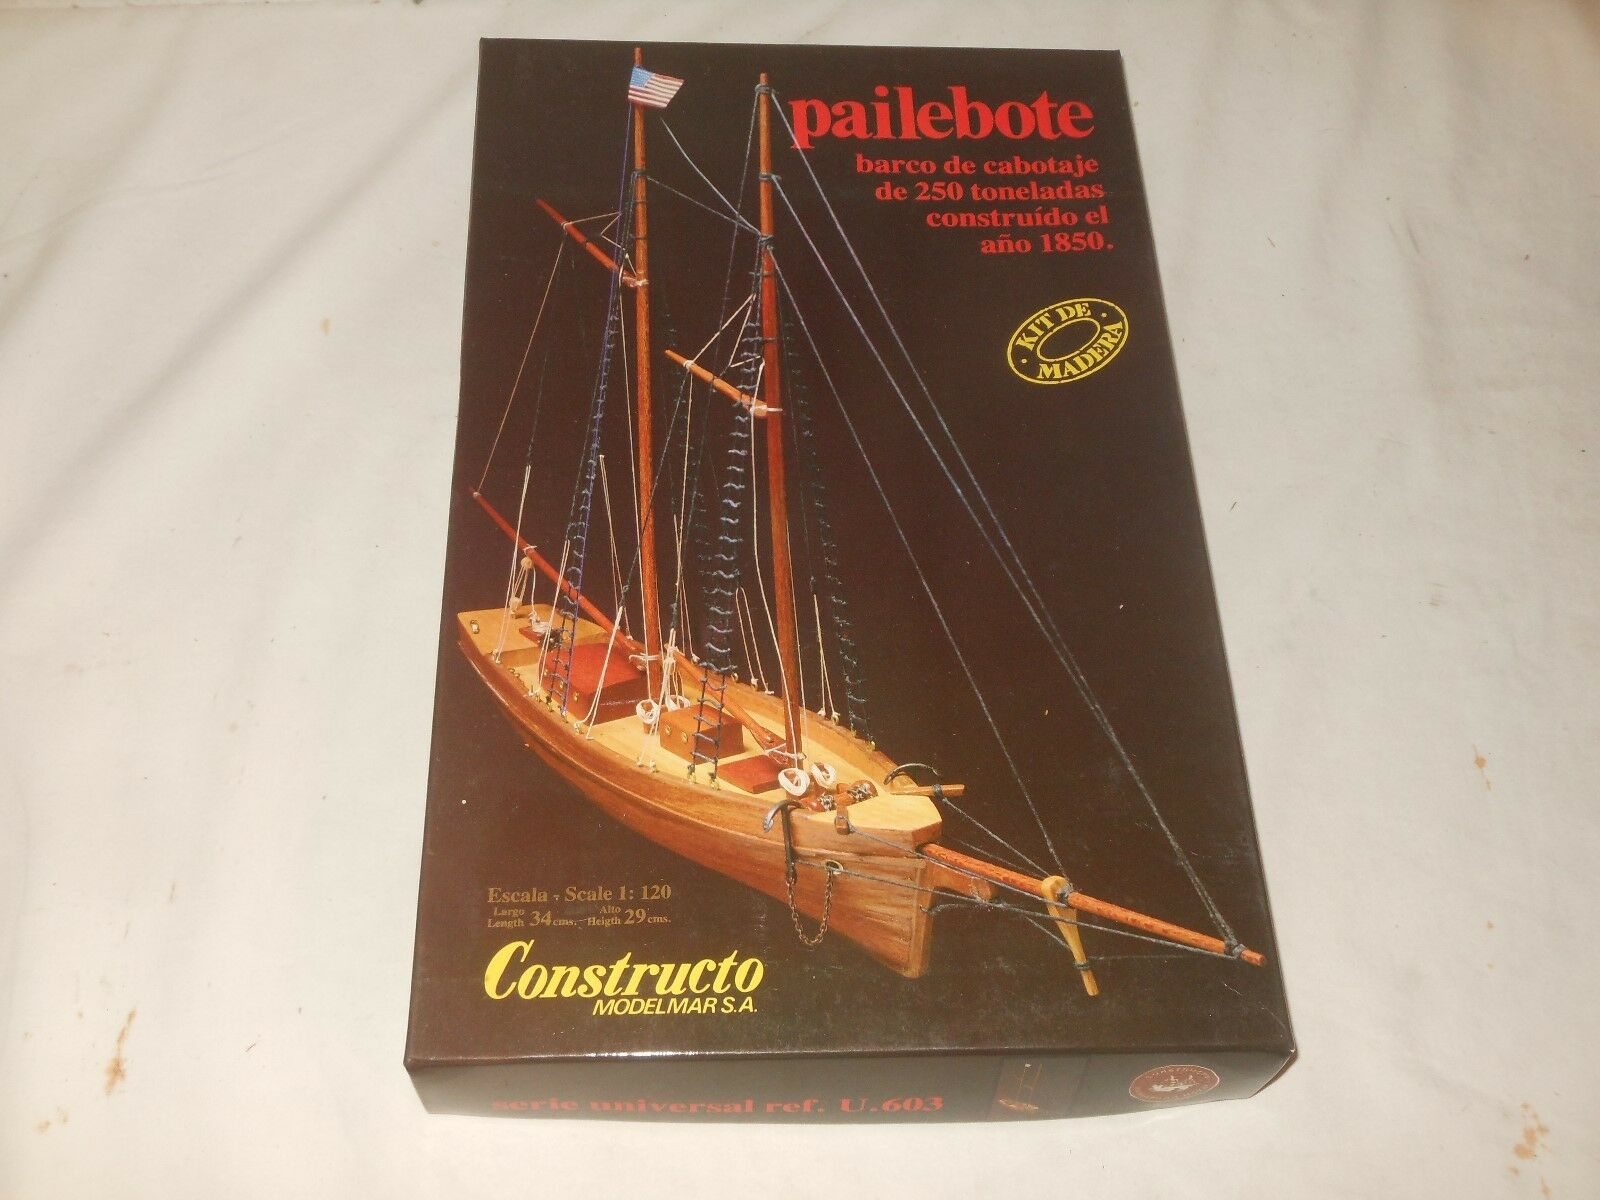 Vintage - Wood - Model Construction Kit - pailebote - modelmar SA OVP 1 120